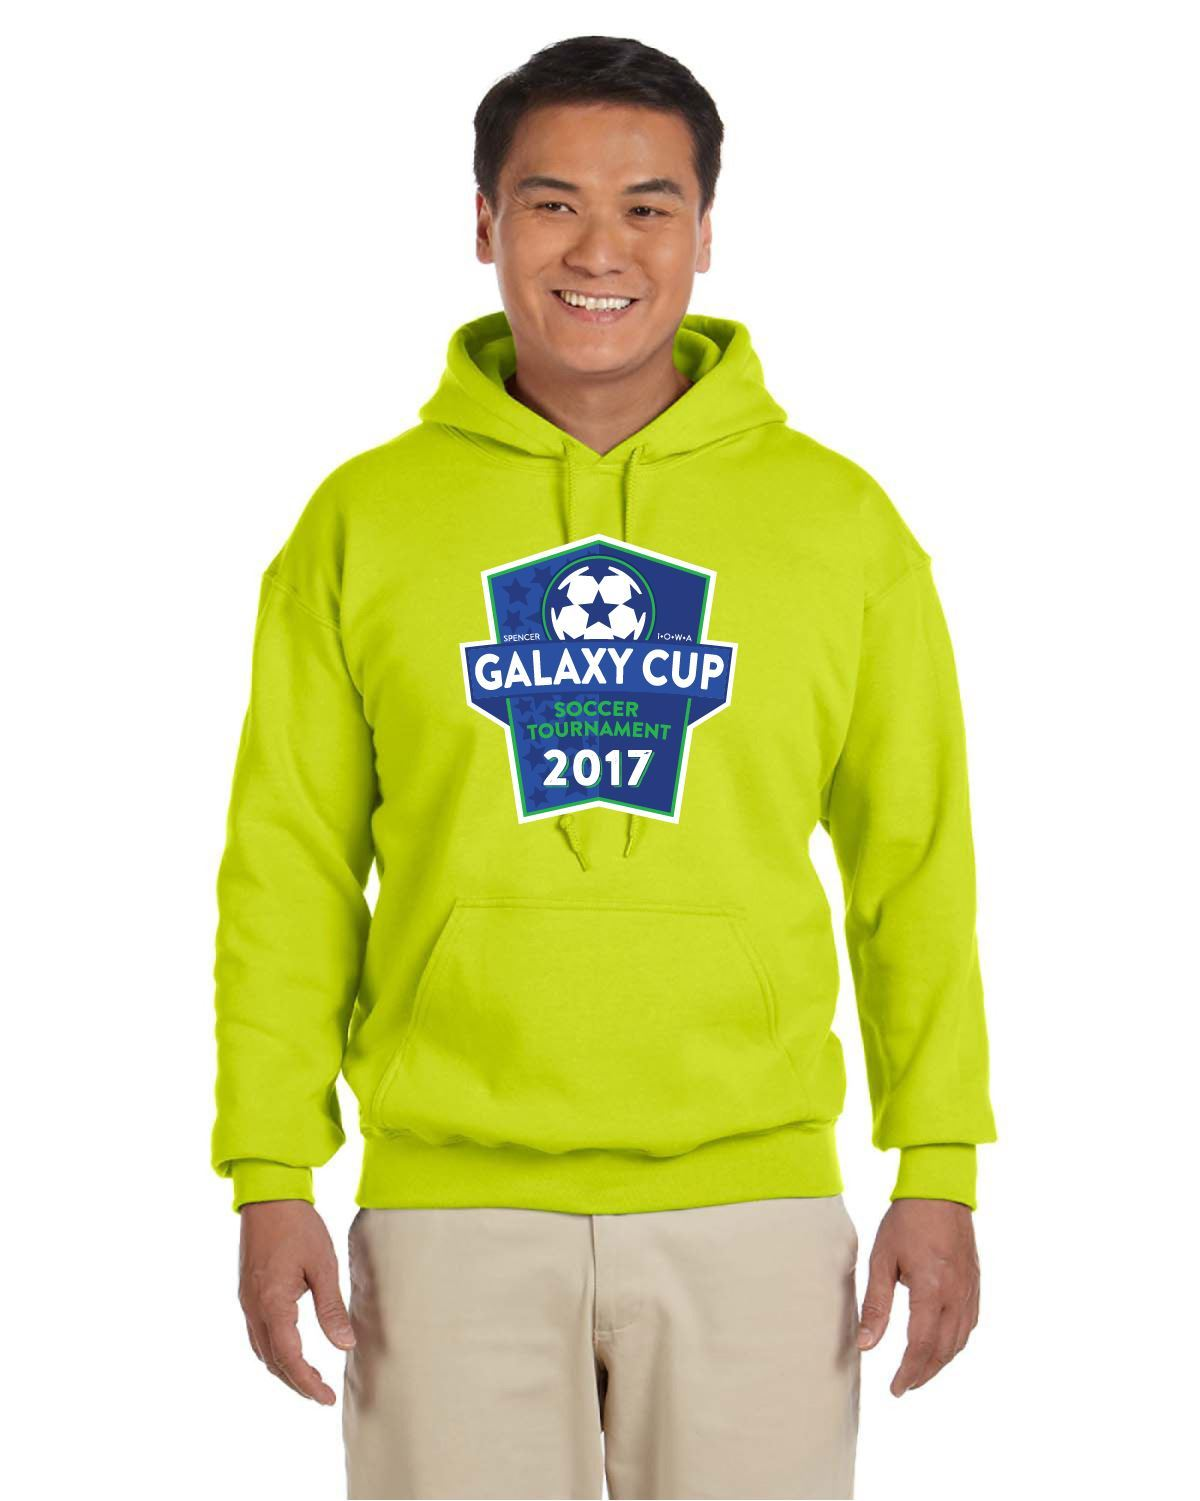 Galaxy Cup Hooded Sweatshirt - Safety Green Goal Kick Soccer Youth Large